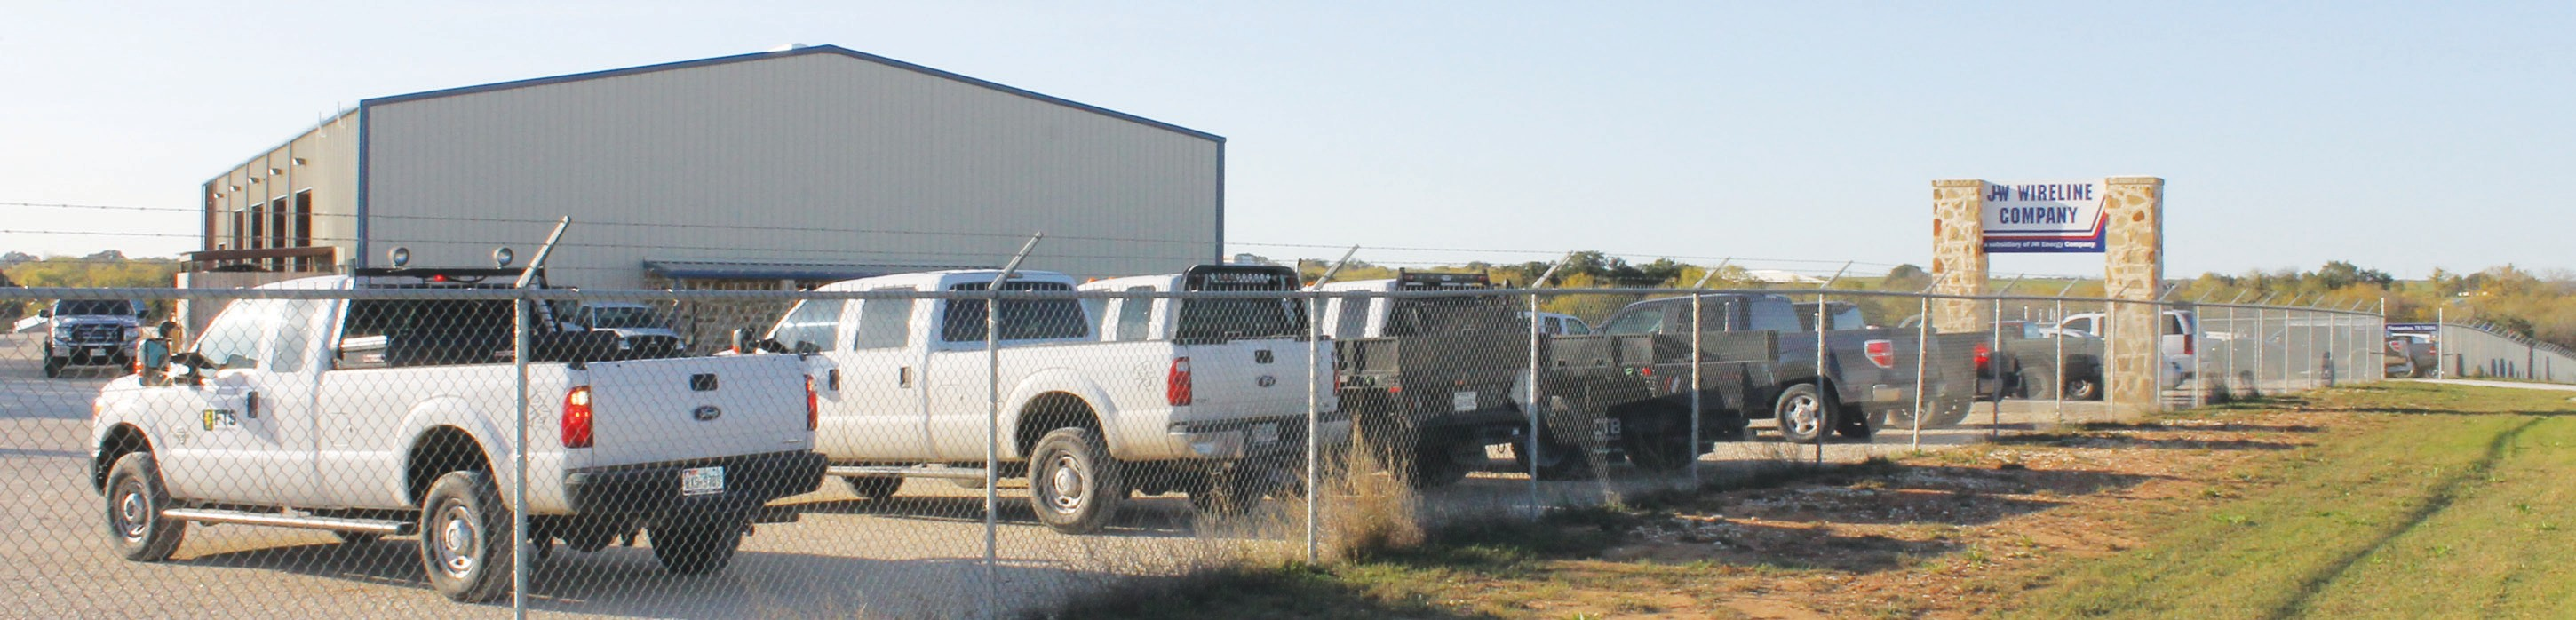 J-W Wireline facilities northeast of Pleasanton at 6921 FM 1764. The firm was acquired recently by FTS International